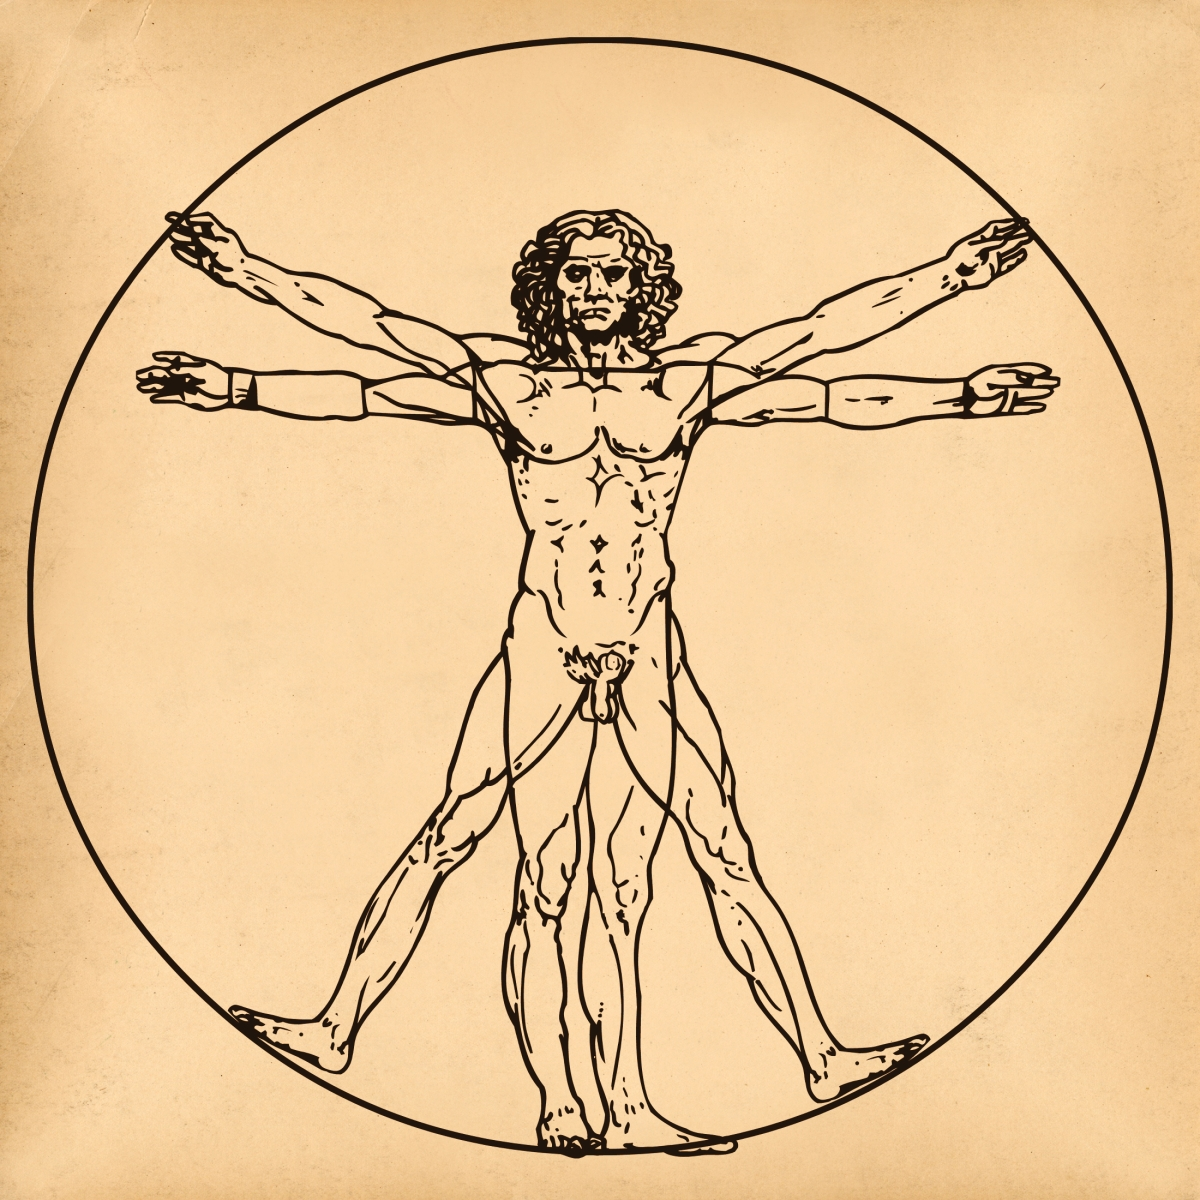 Are athletes more closely related to the vitruvian man theory than non-athletes?